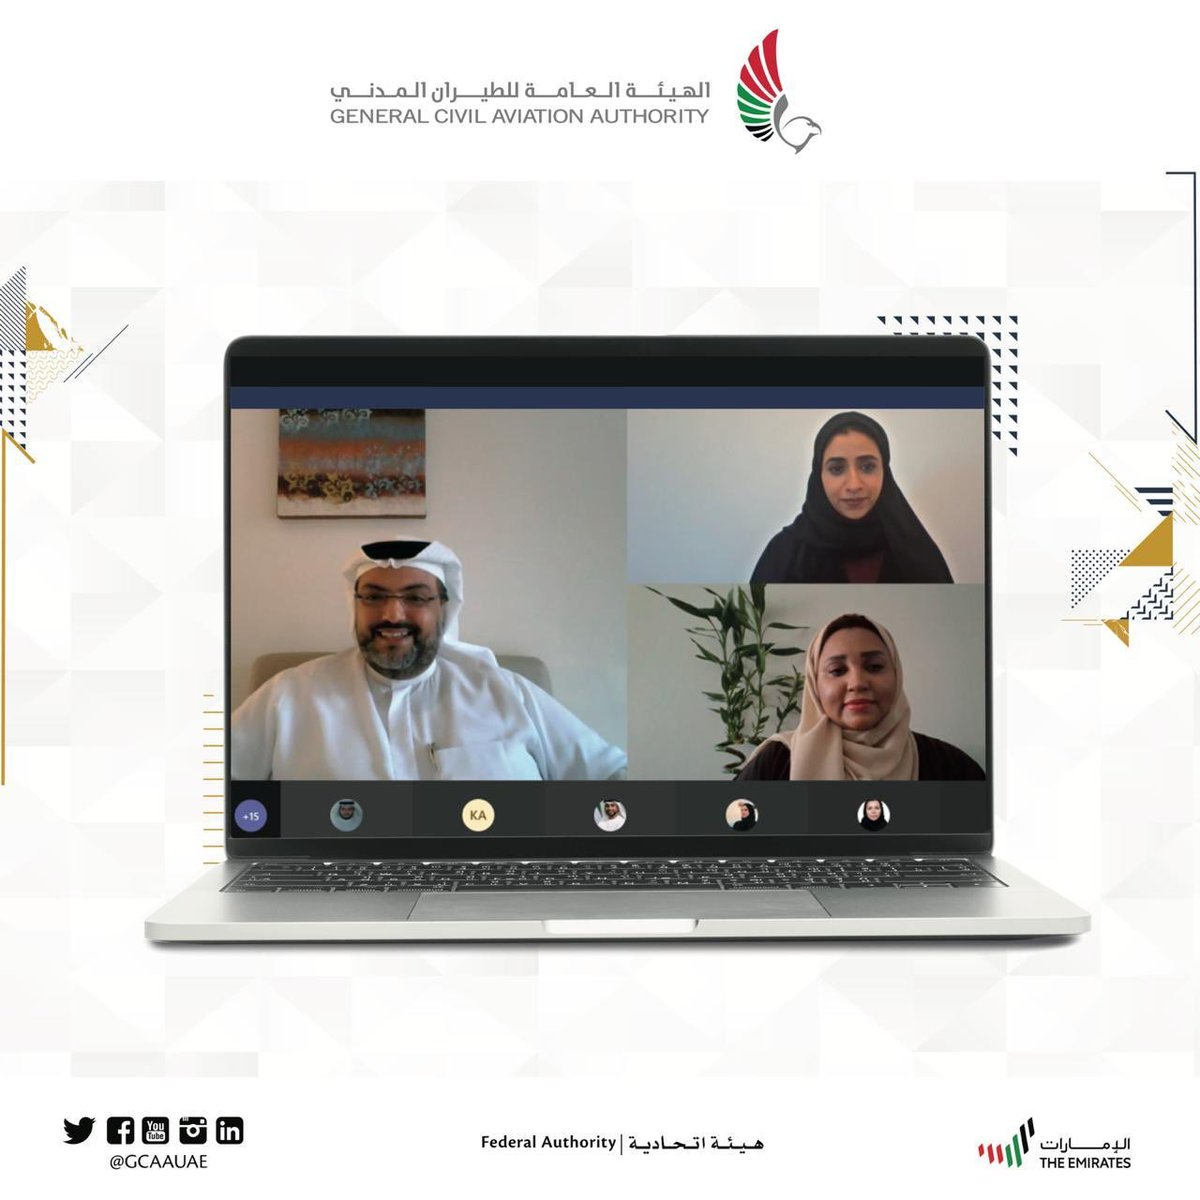 1️⃣ The General Civil Aviation Authority Youth Council held a virtual session for the youth employees with the participation of Mr. Mohammed Faisal Al Dosari, Assistant Director General of Air Accident Investigation Sector. https://t.co/VTAOo4383G